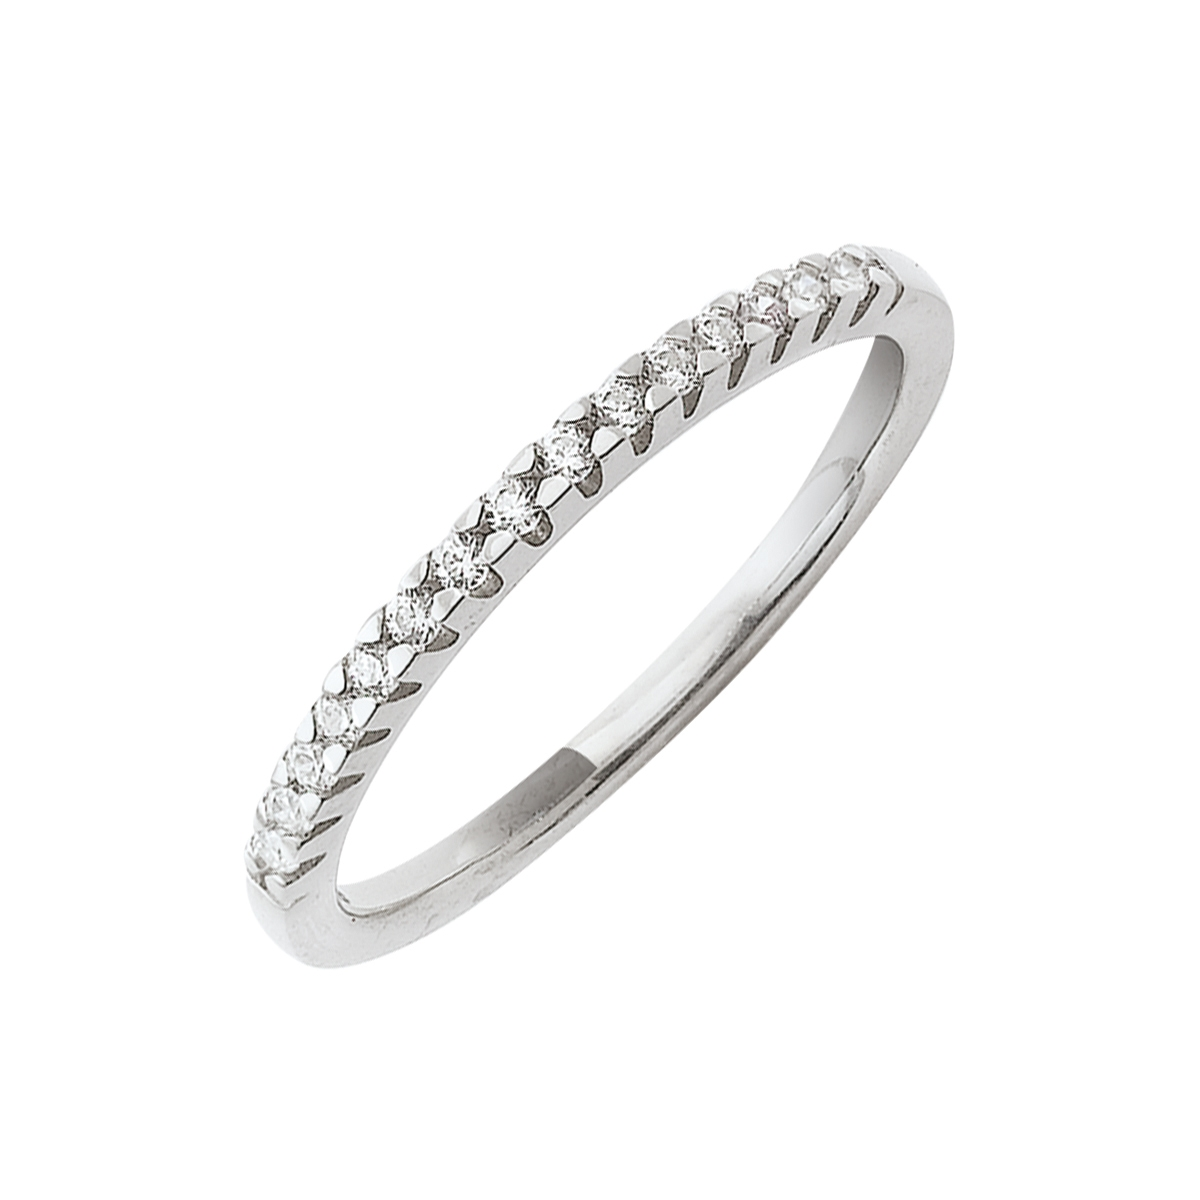 Alliance demi-tour serti griffes or blanc - Diamants synthétiques 0,15 carat